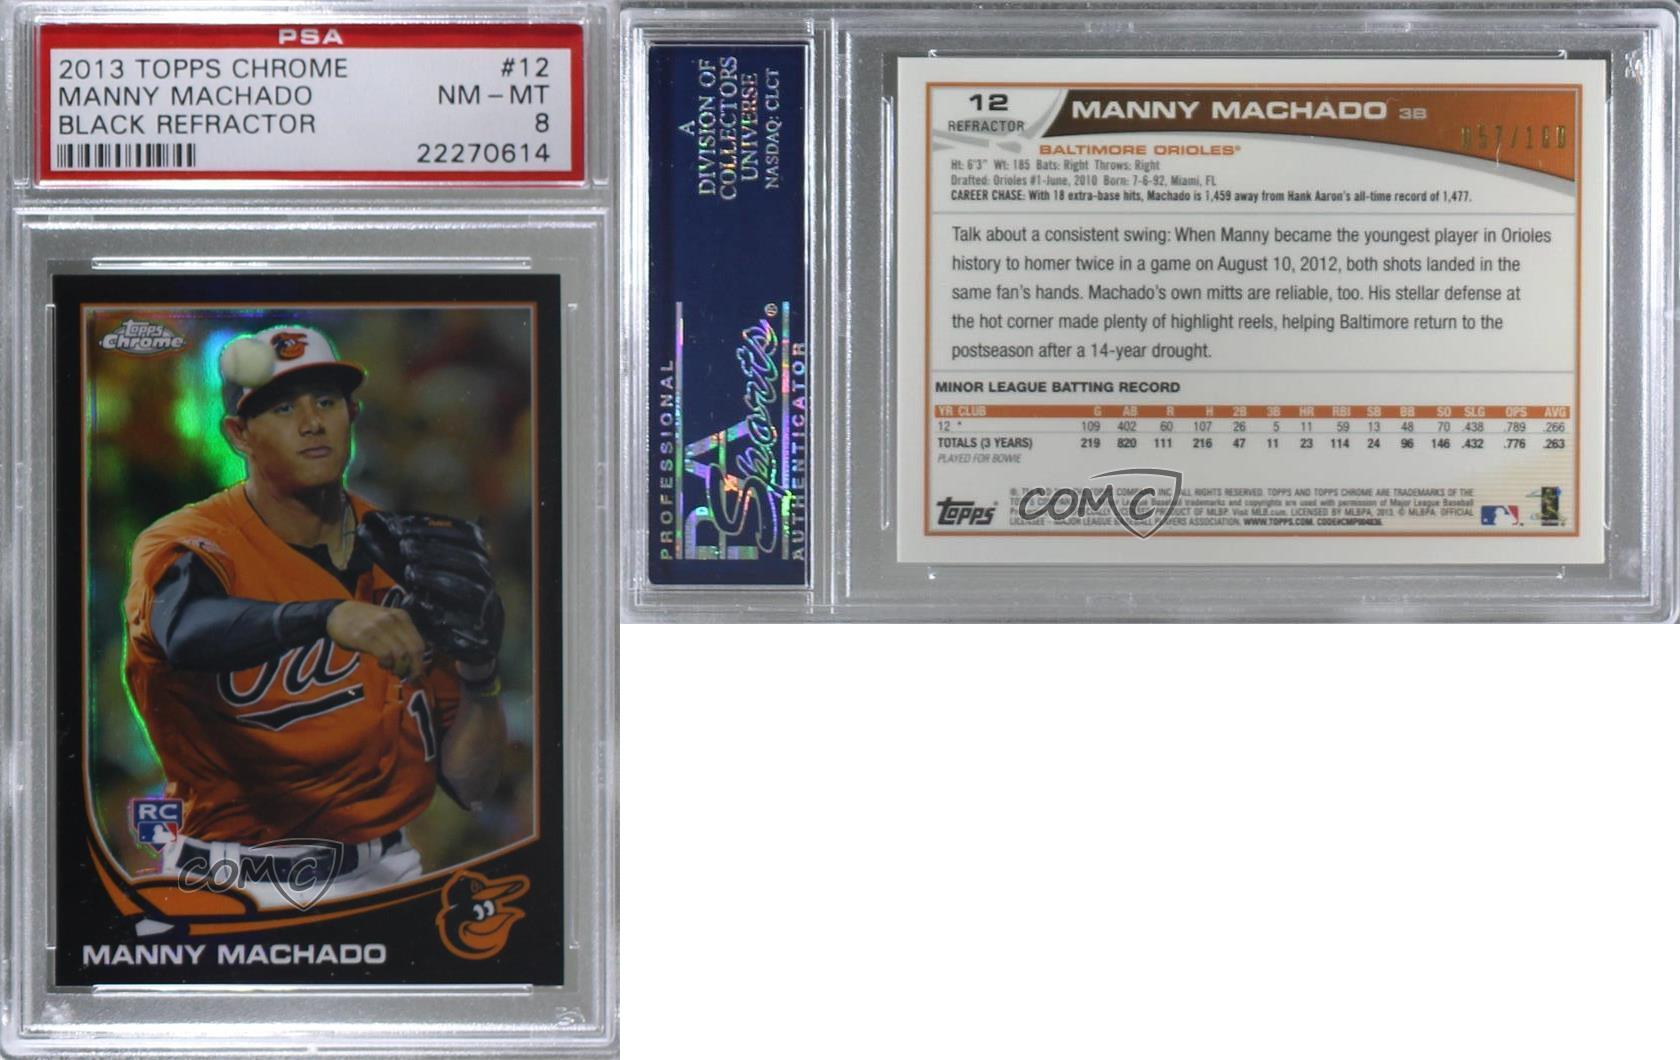 2013 Topps Chrome MANNY MACHADO ROOKIE REFRACTOR #12 qty available PSA 9